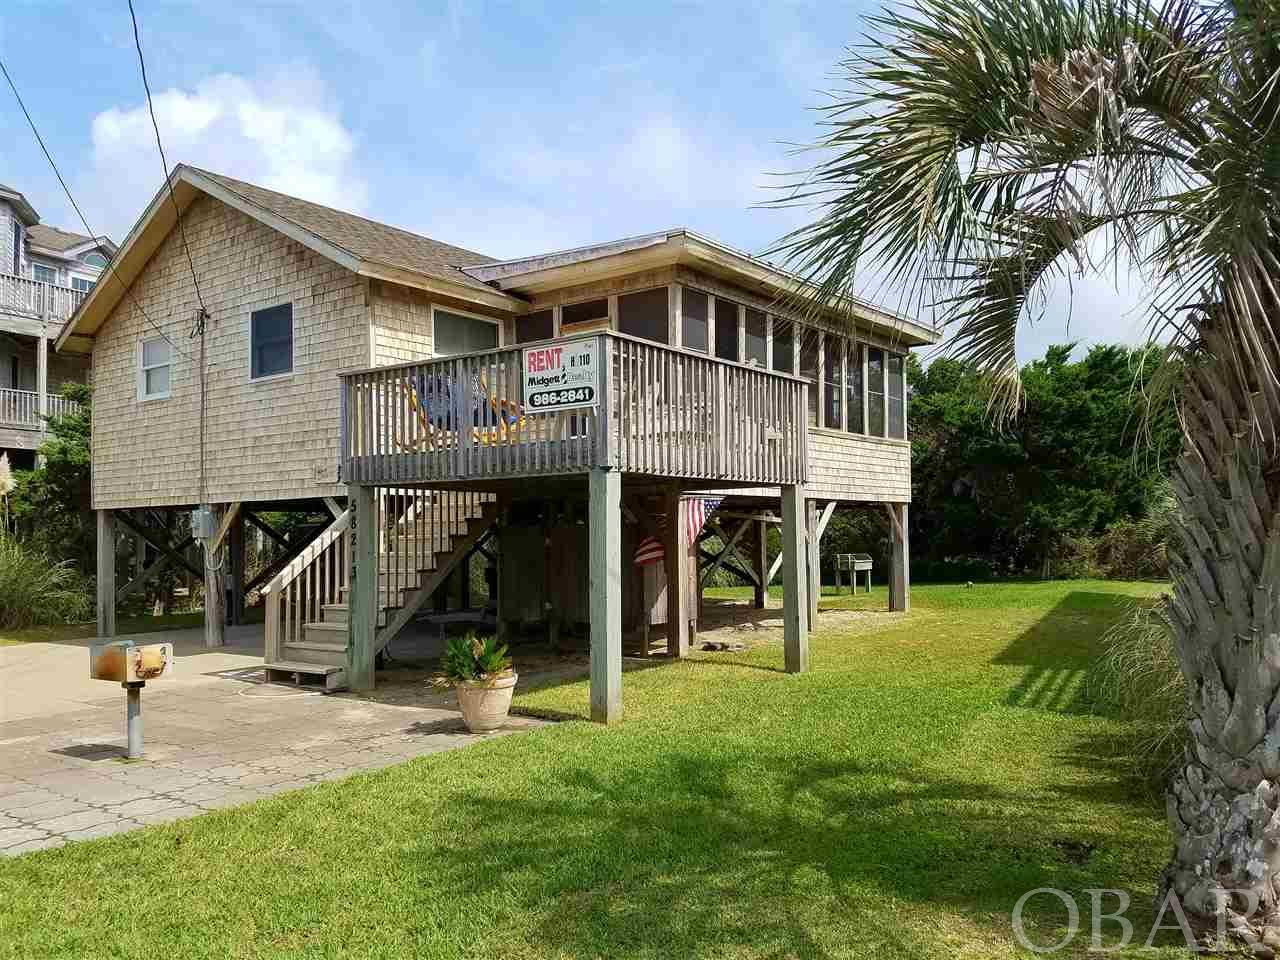 Opinion you midget realty hateras nc not